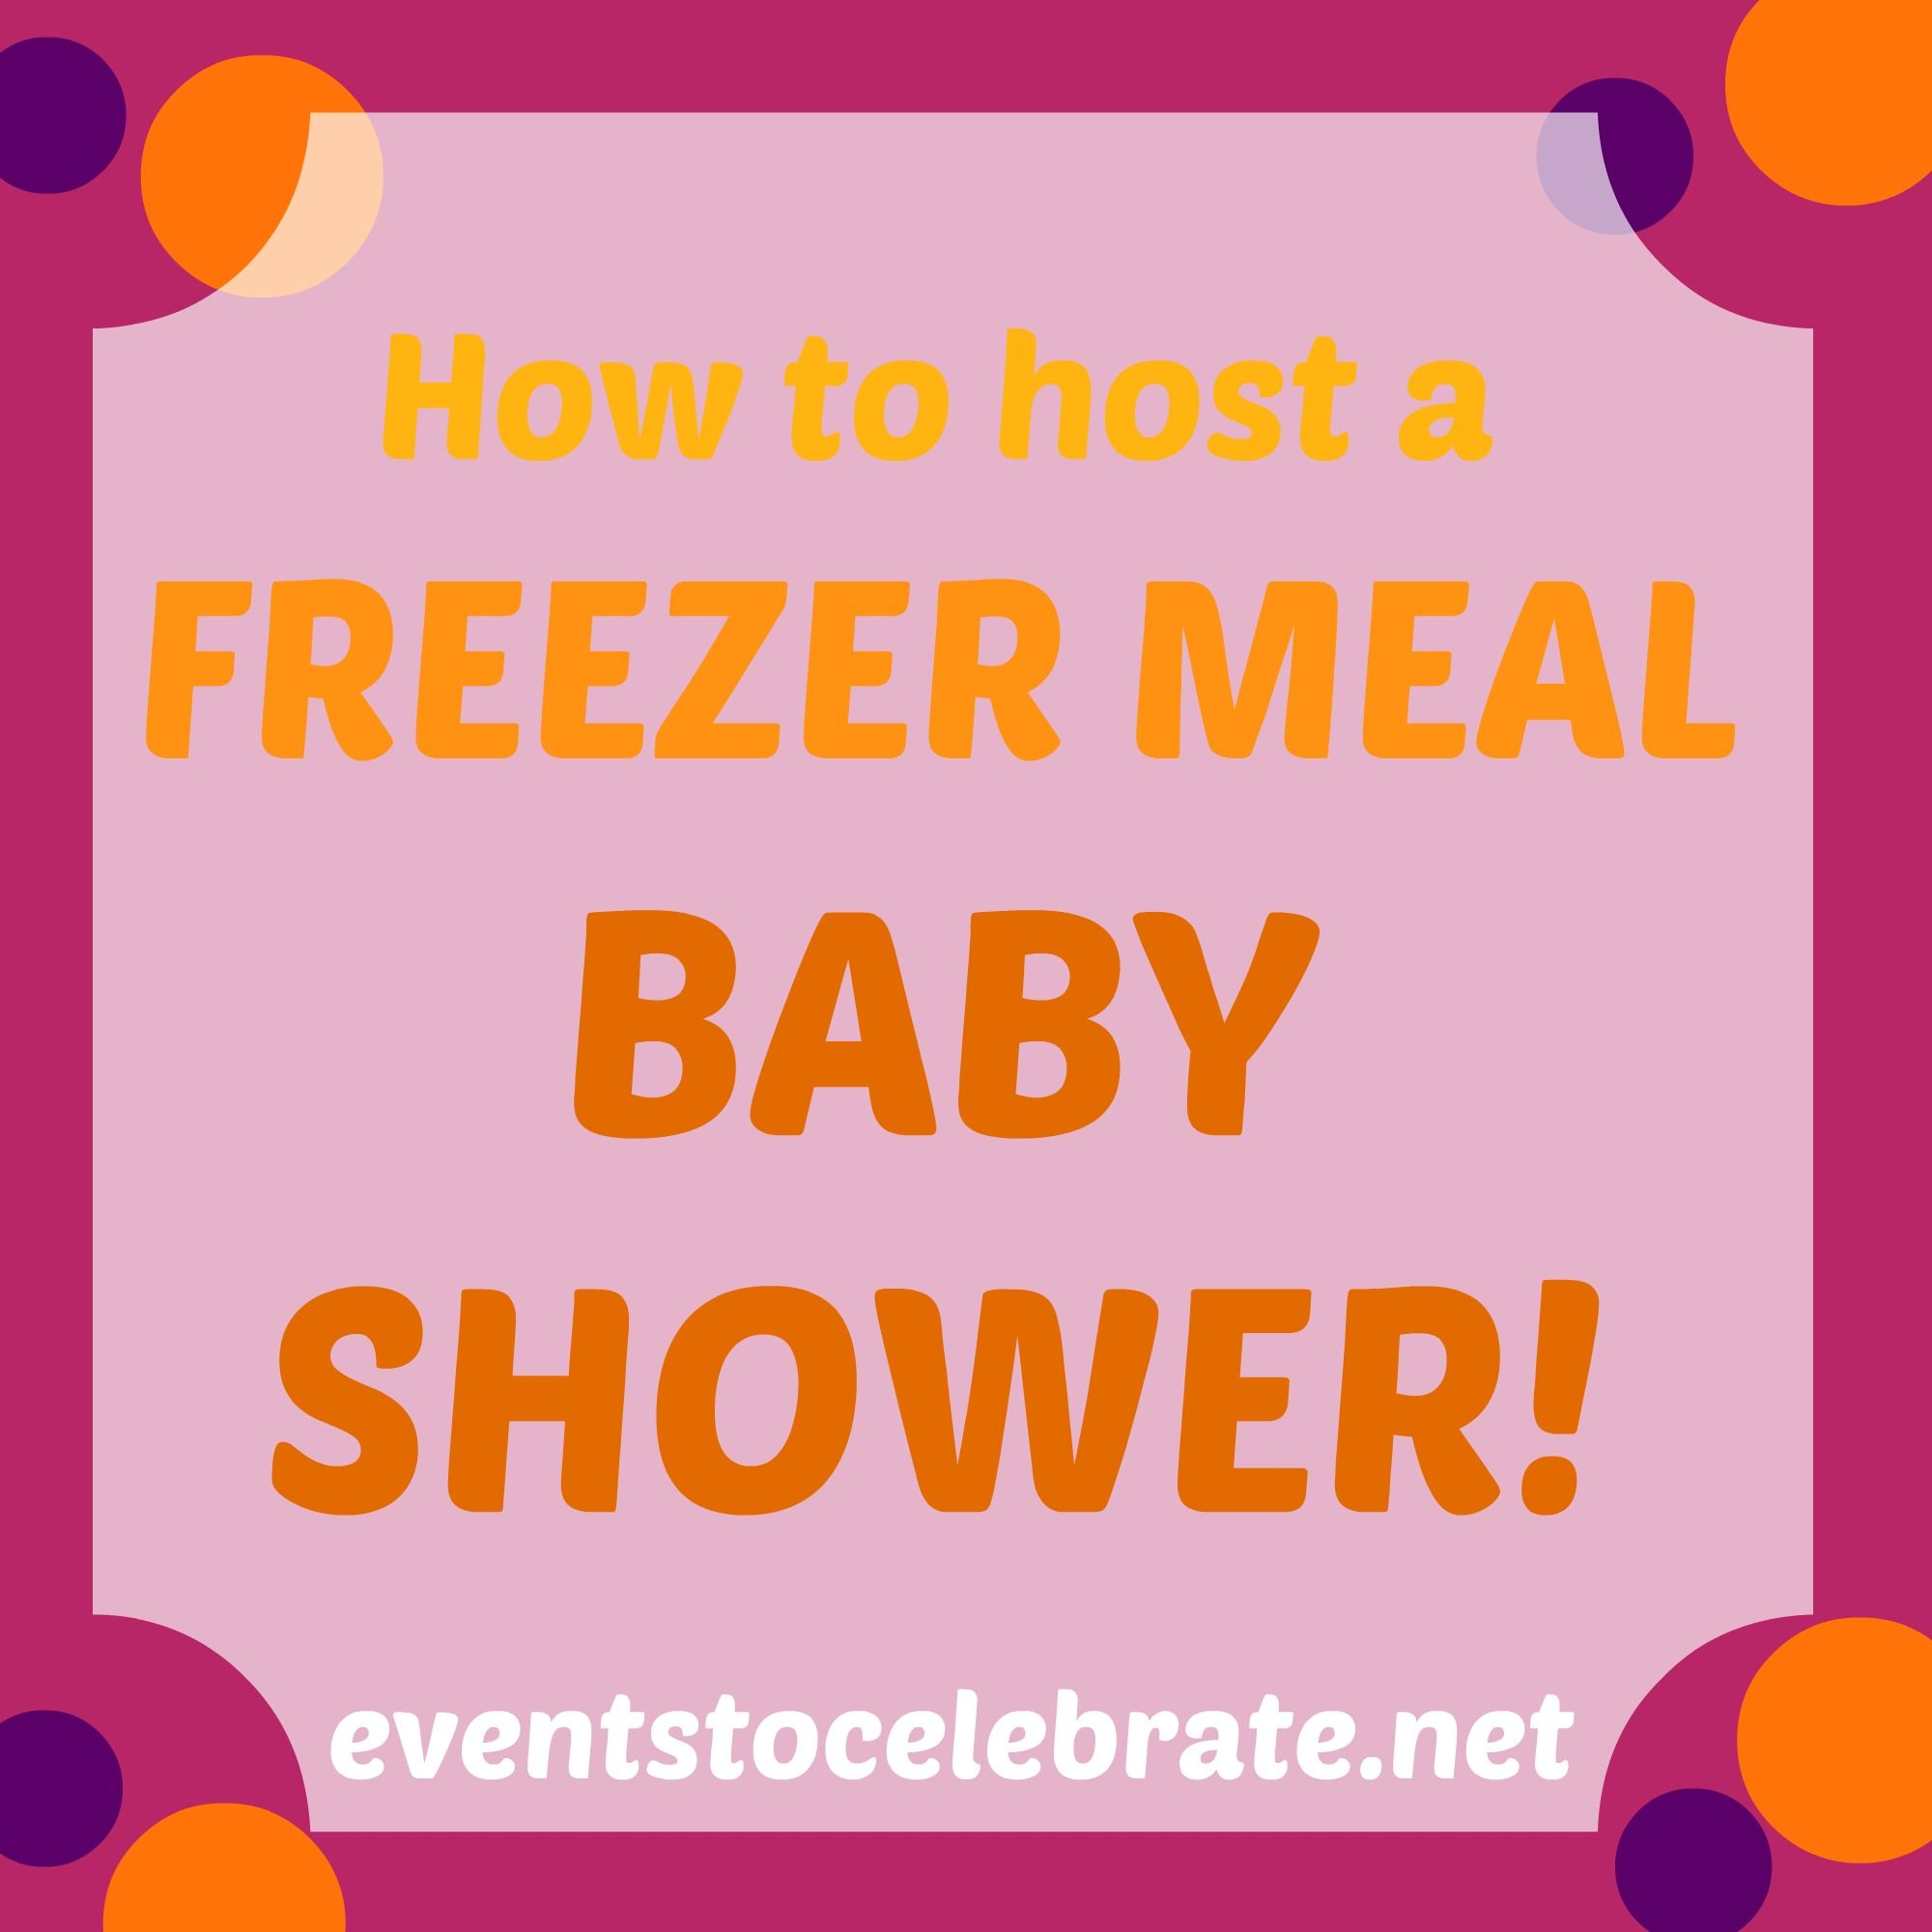 Freezer Meal Baby Shower   Events To CELEBRATE! Super Smart   Ask People To  Bring